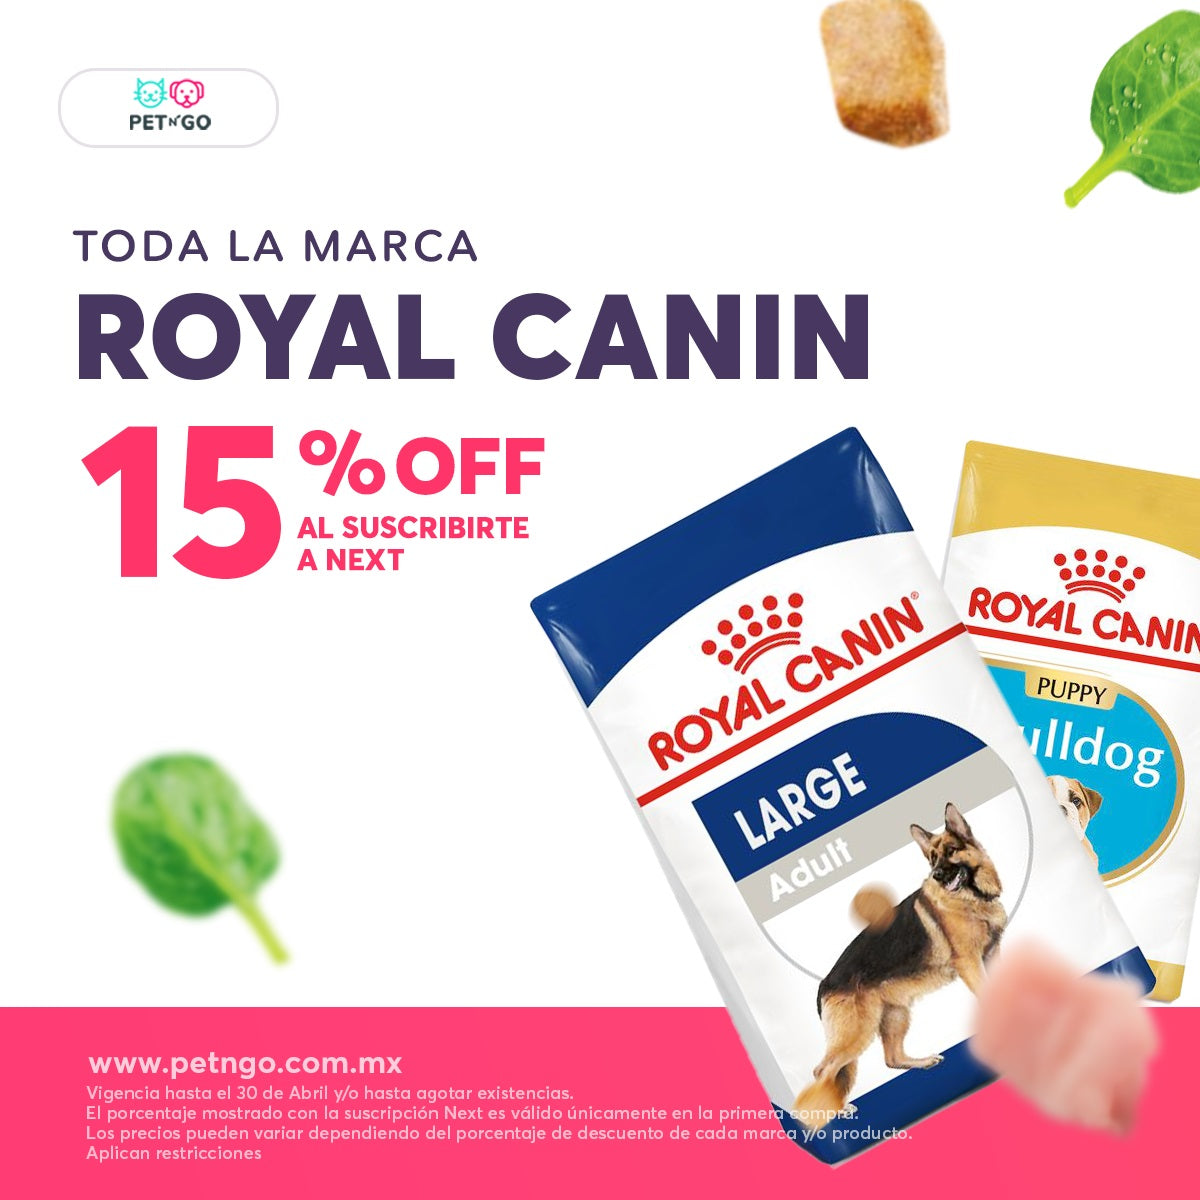 Royal Canin en petngo